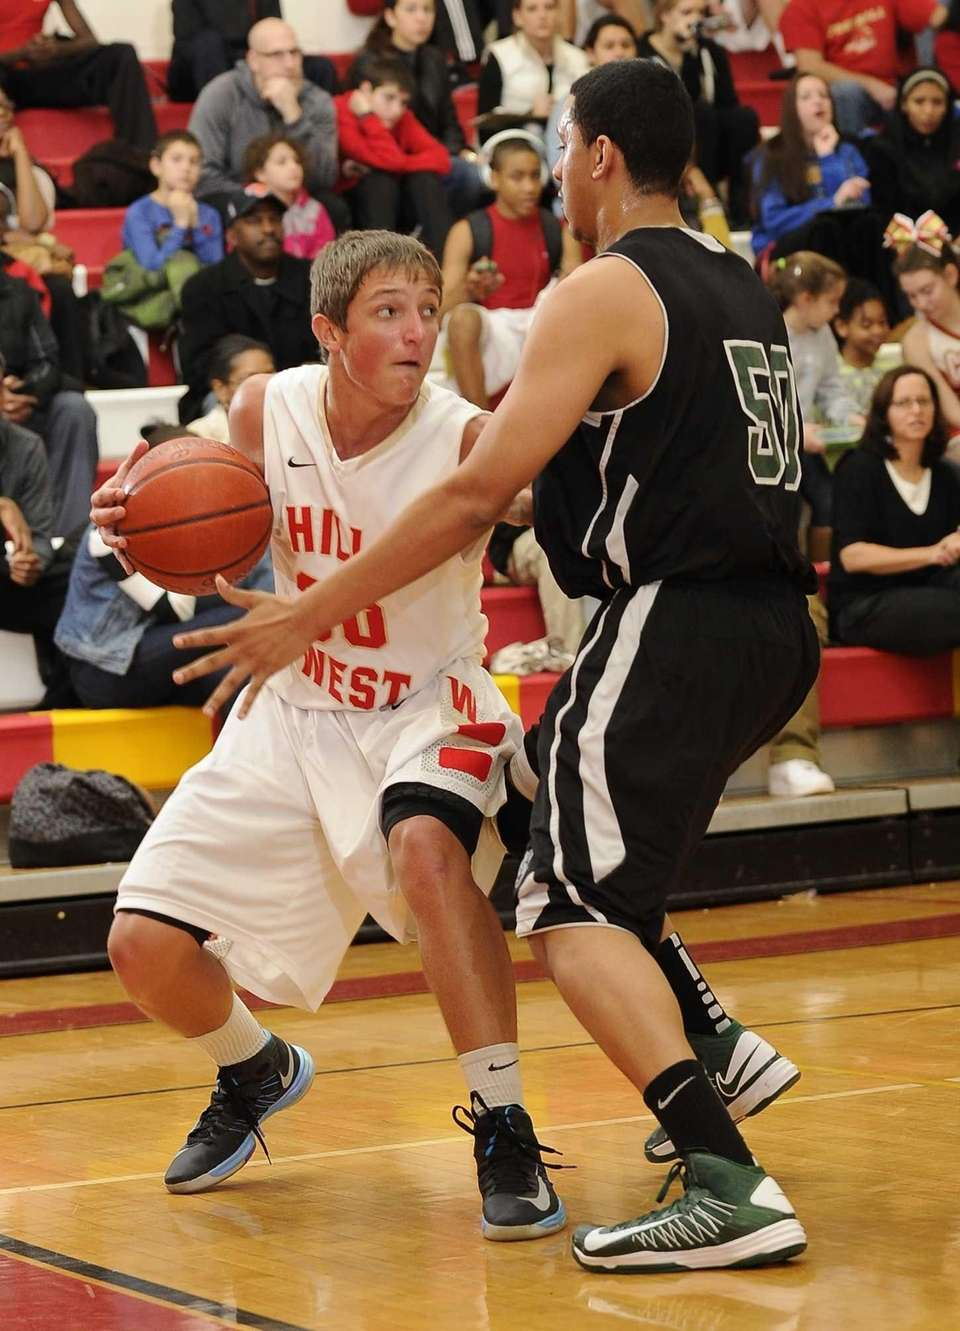 Brentwood's Michael Certain guards Half Hollow Hills West's